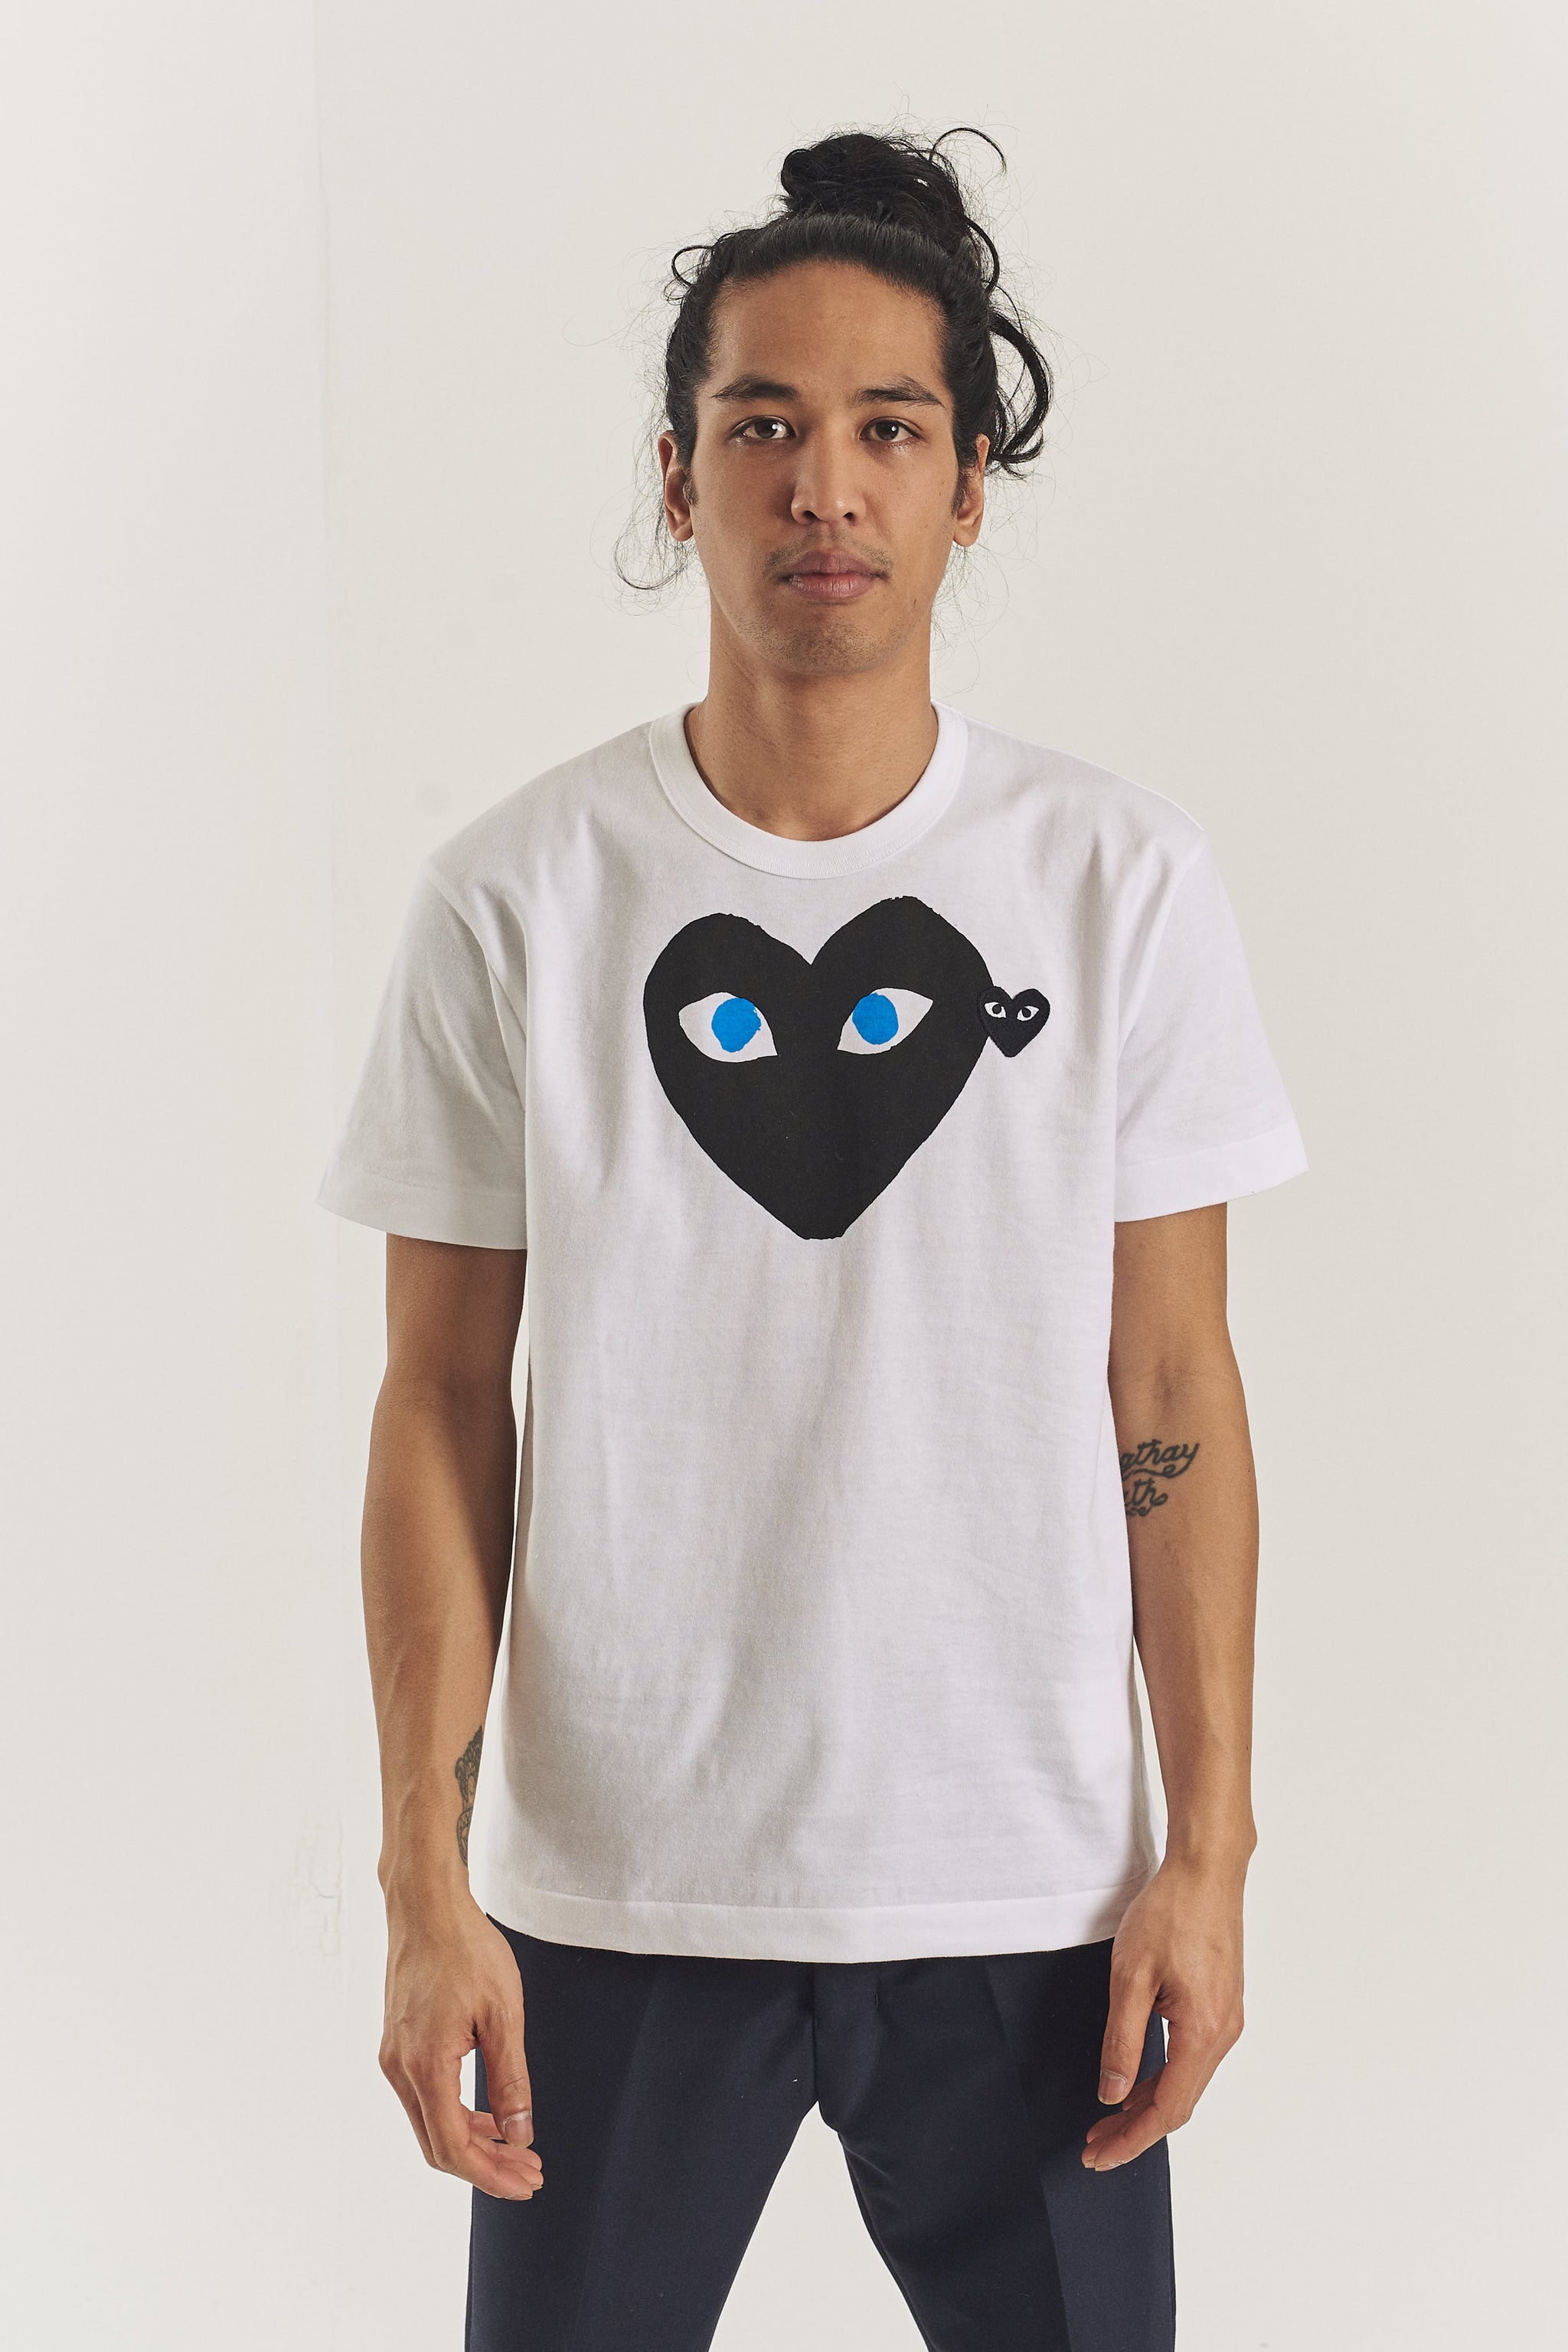 Big Black Heart Blue Eyes t-shirt